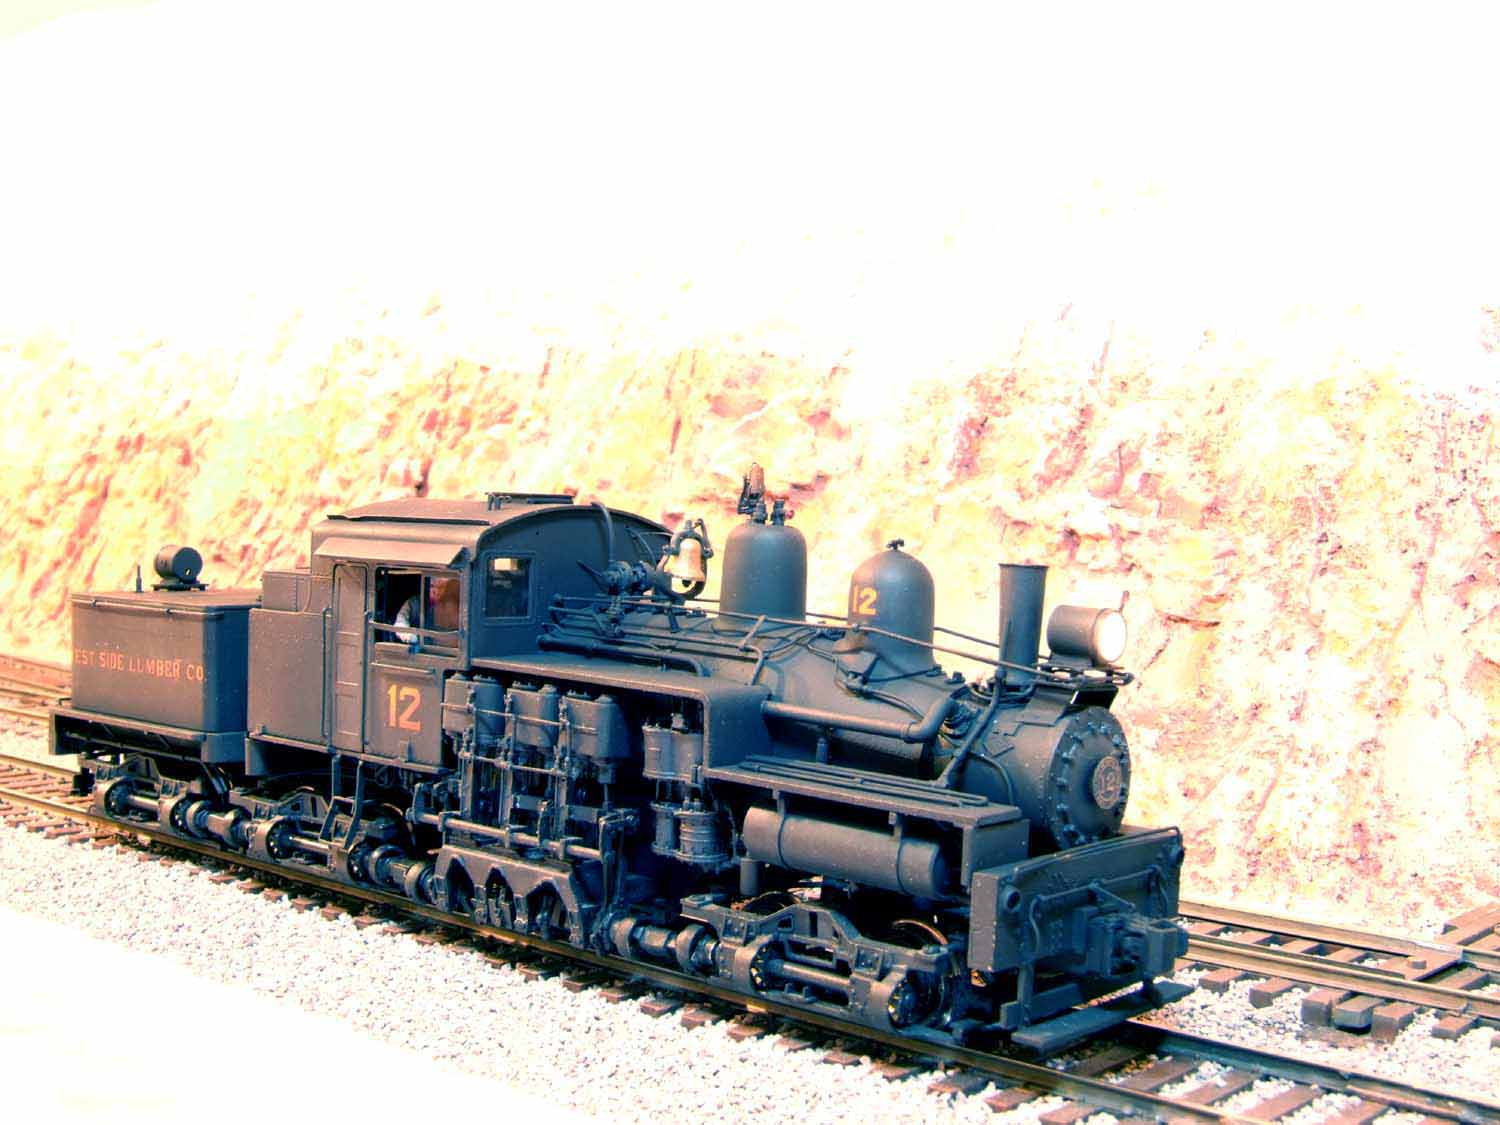 HO Scale Shay Model Locomotives http://onlanajobs556.blog.com/2011/11/03/shay-locomotive-kit/